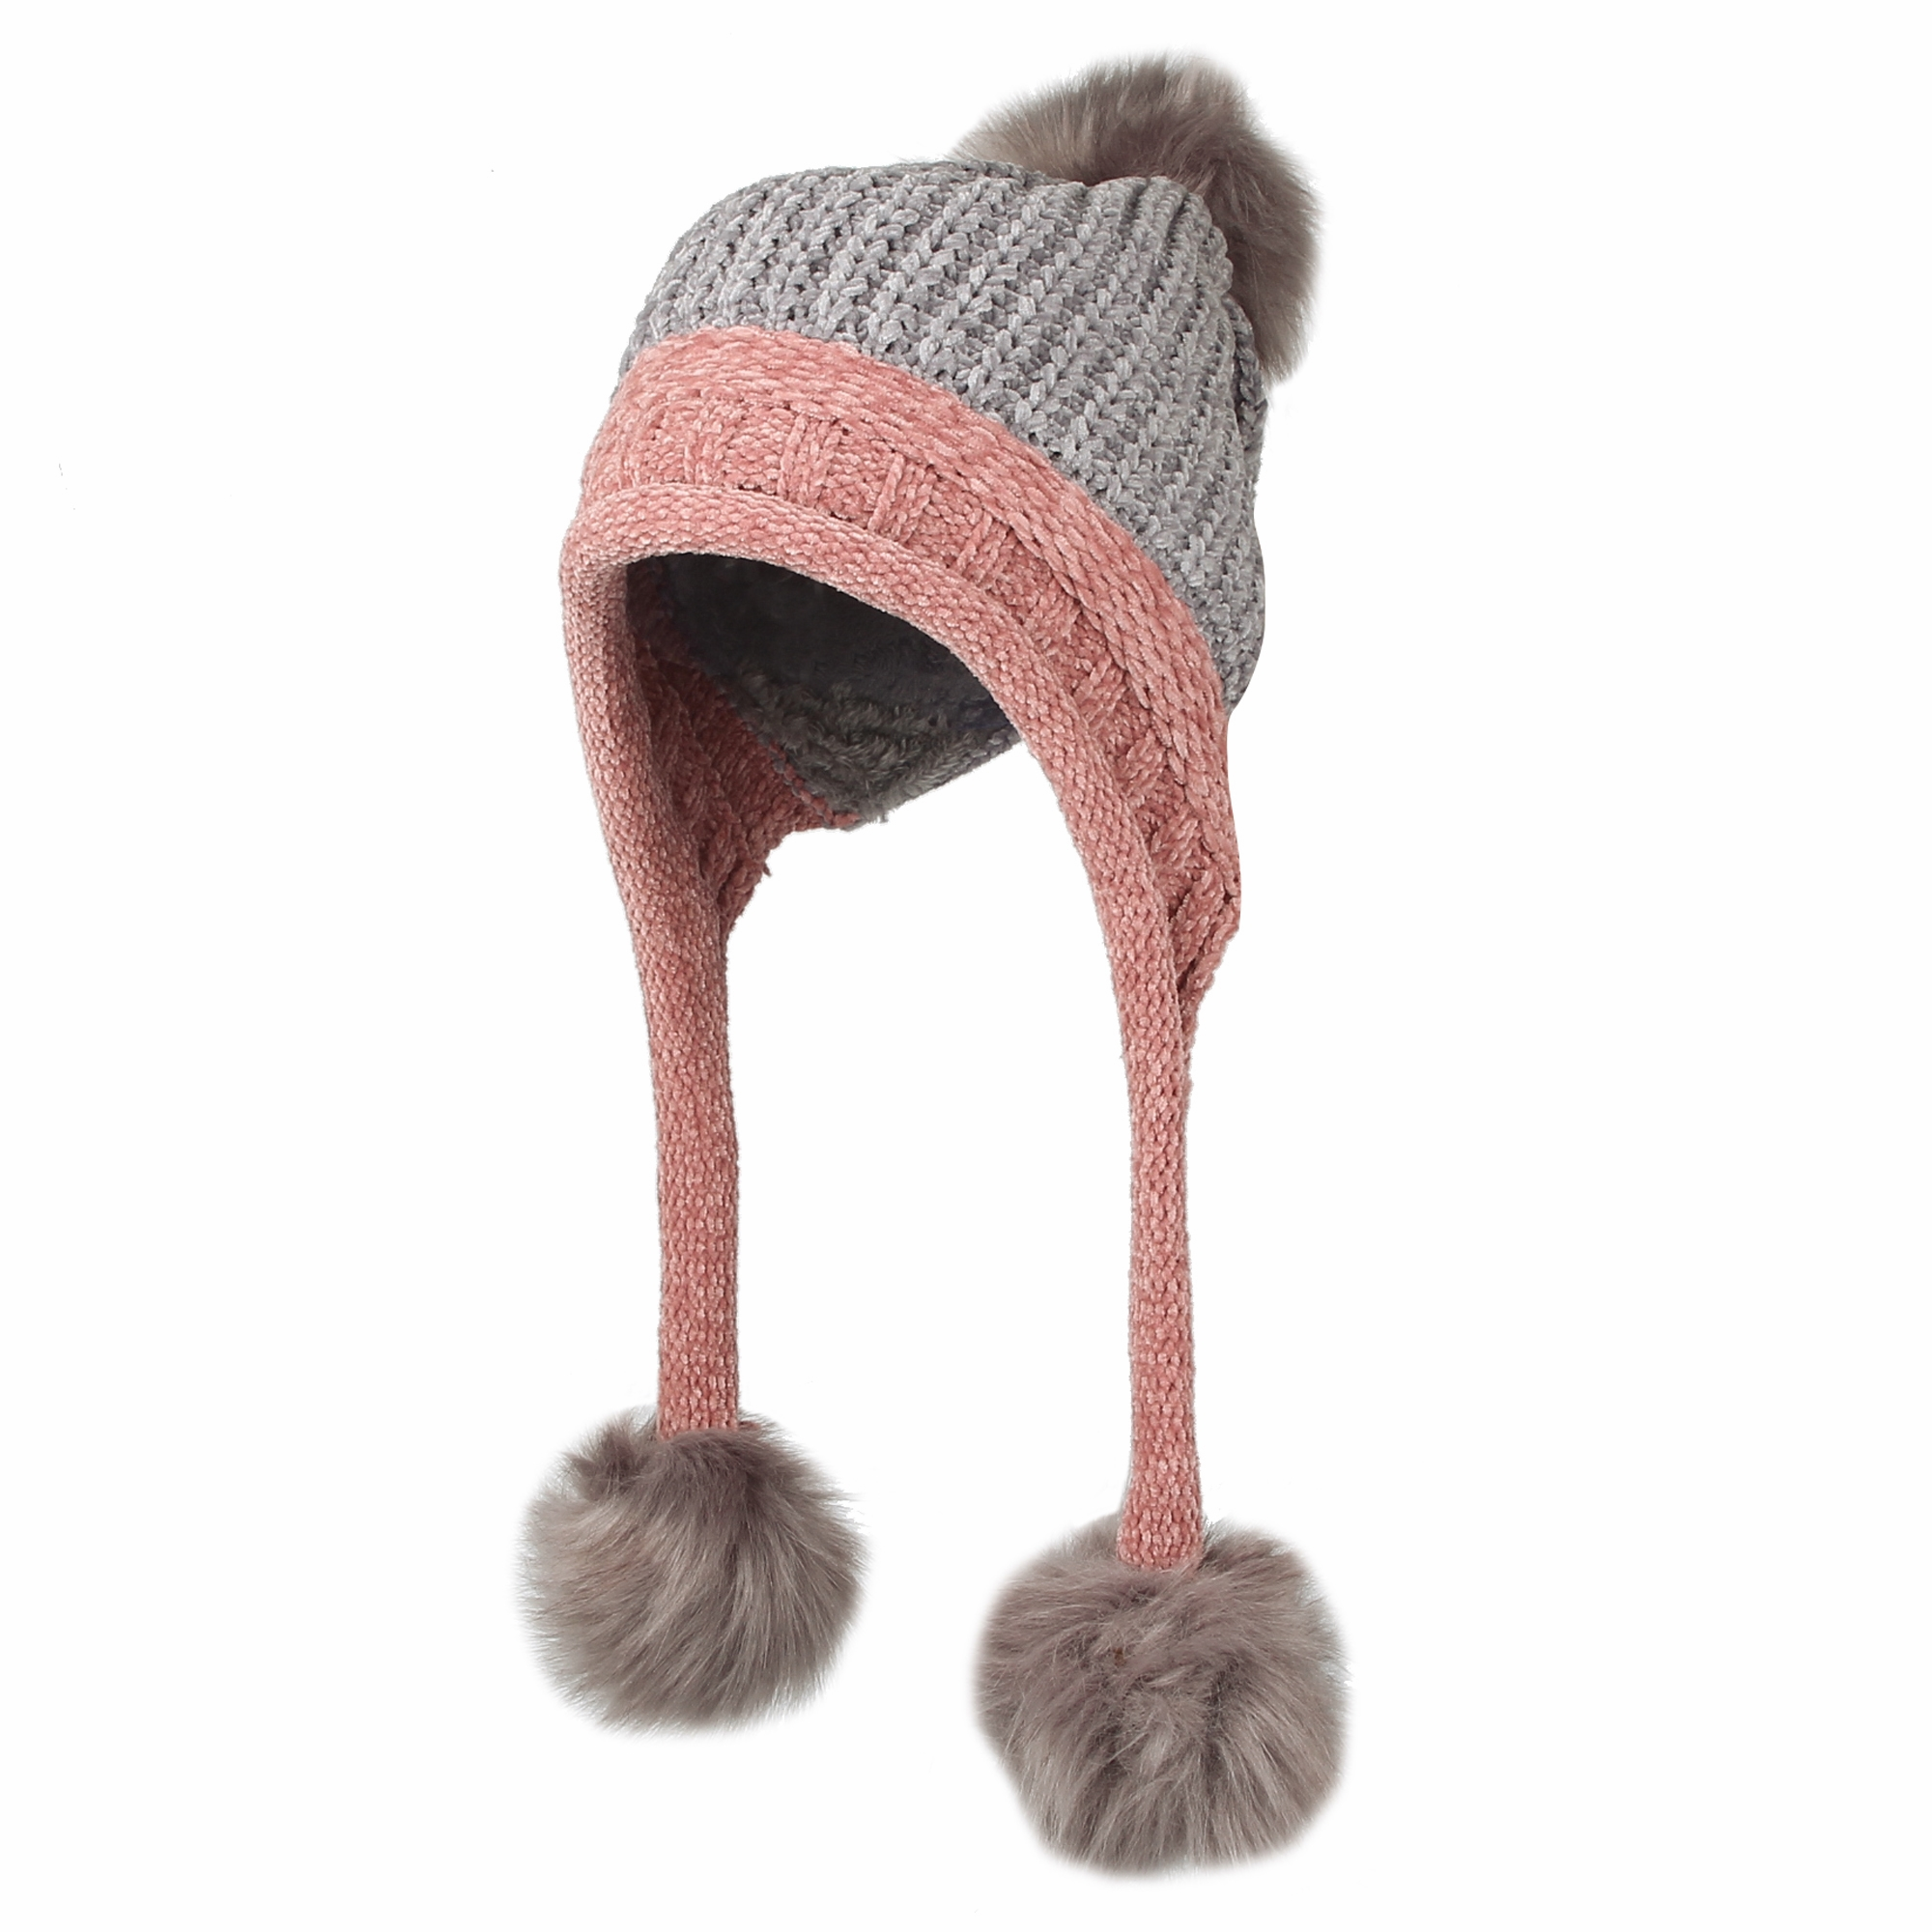 WITHMOONS Fleece Lining Thick Cable Knit Beanie Hat Pom Earflaps DZ70029 ( Grey) - Walmart.com a79f0be2f5f